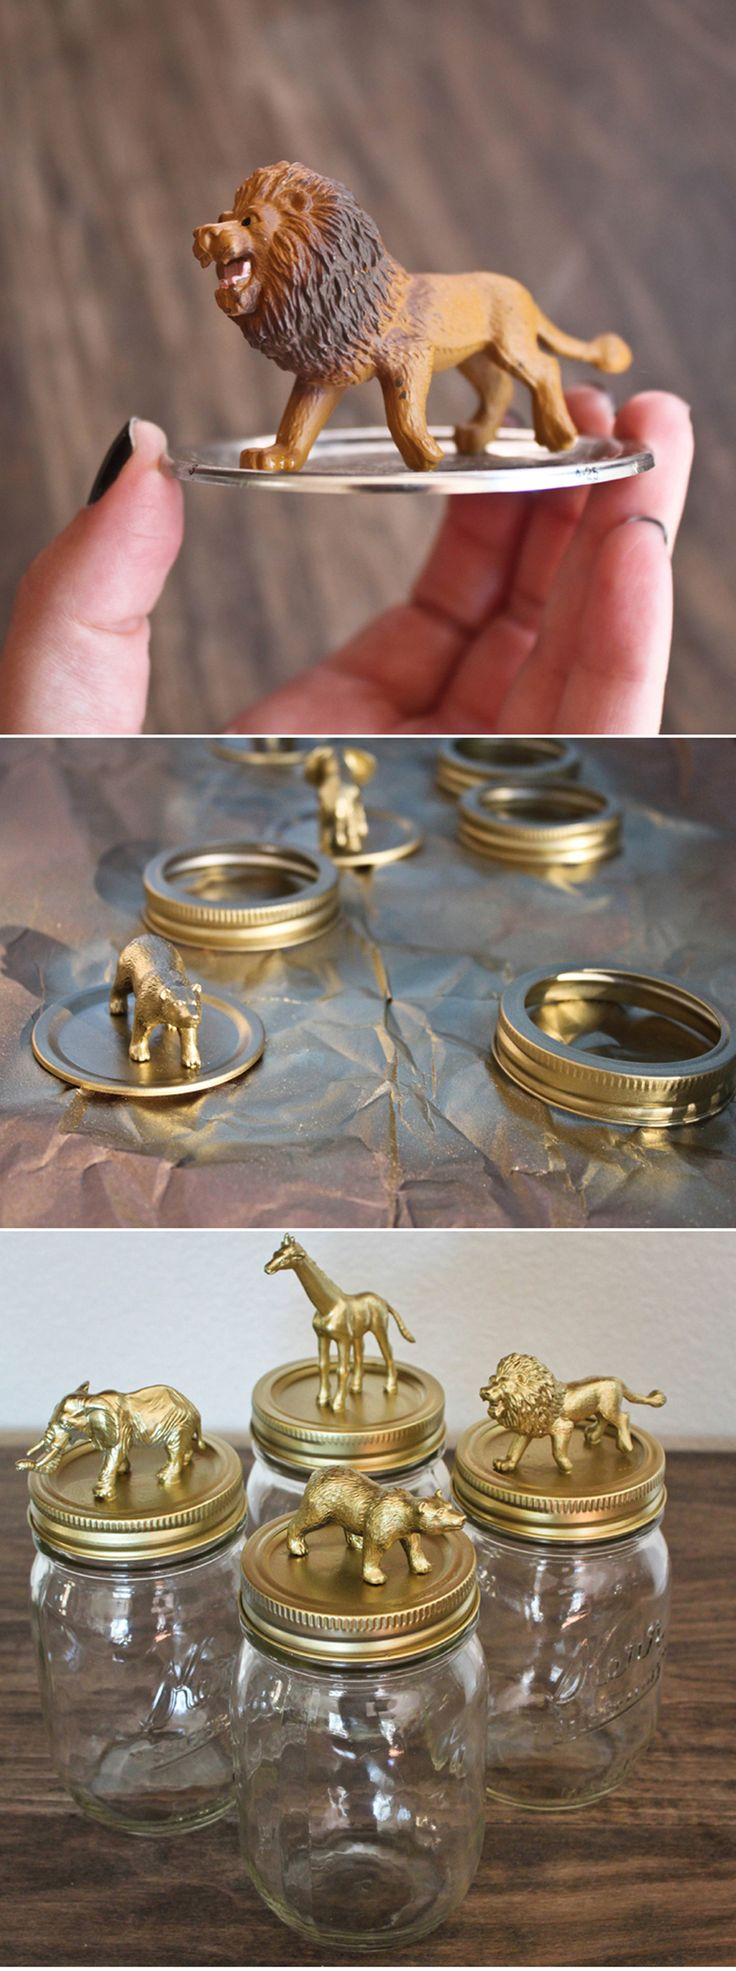 DIY Golden Safari Mason Jar Capsm